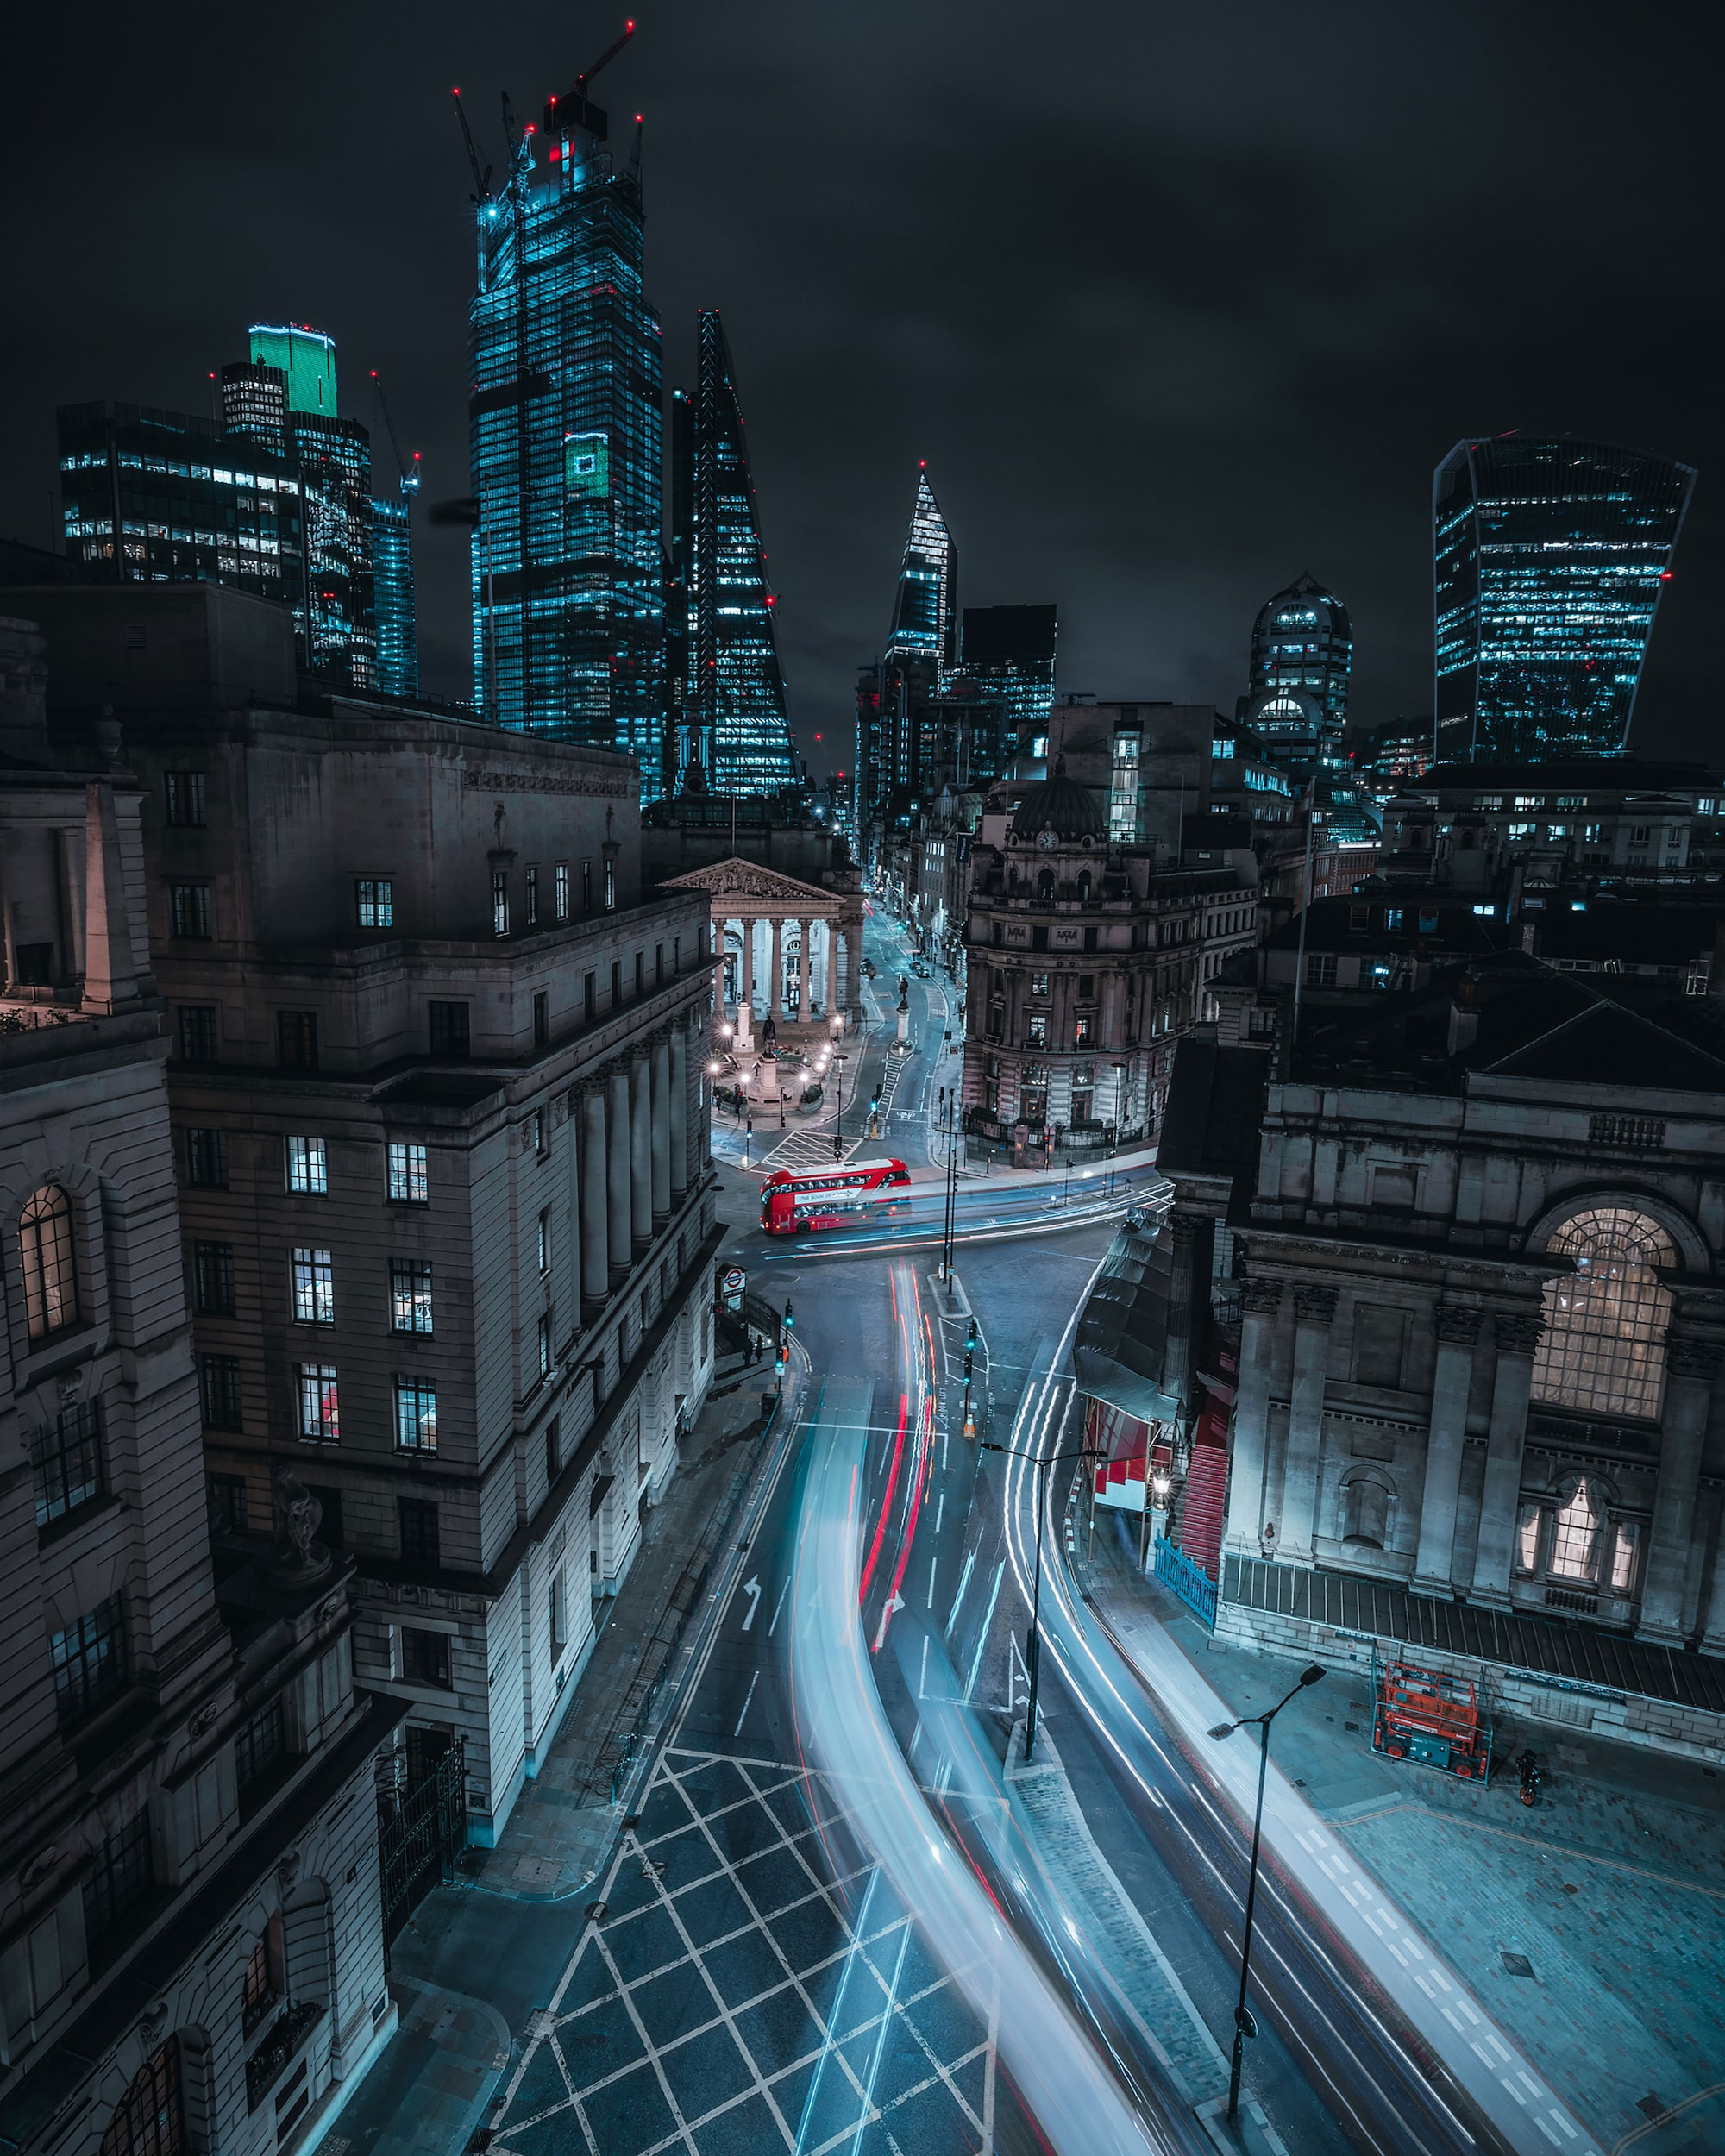 mike will sony alpha 7RIII long exposure traffic trails in london street at night